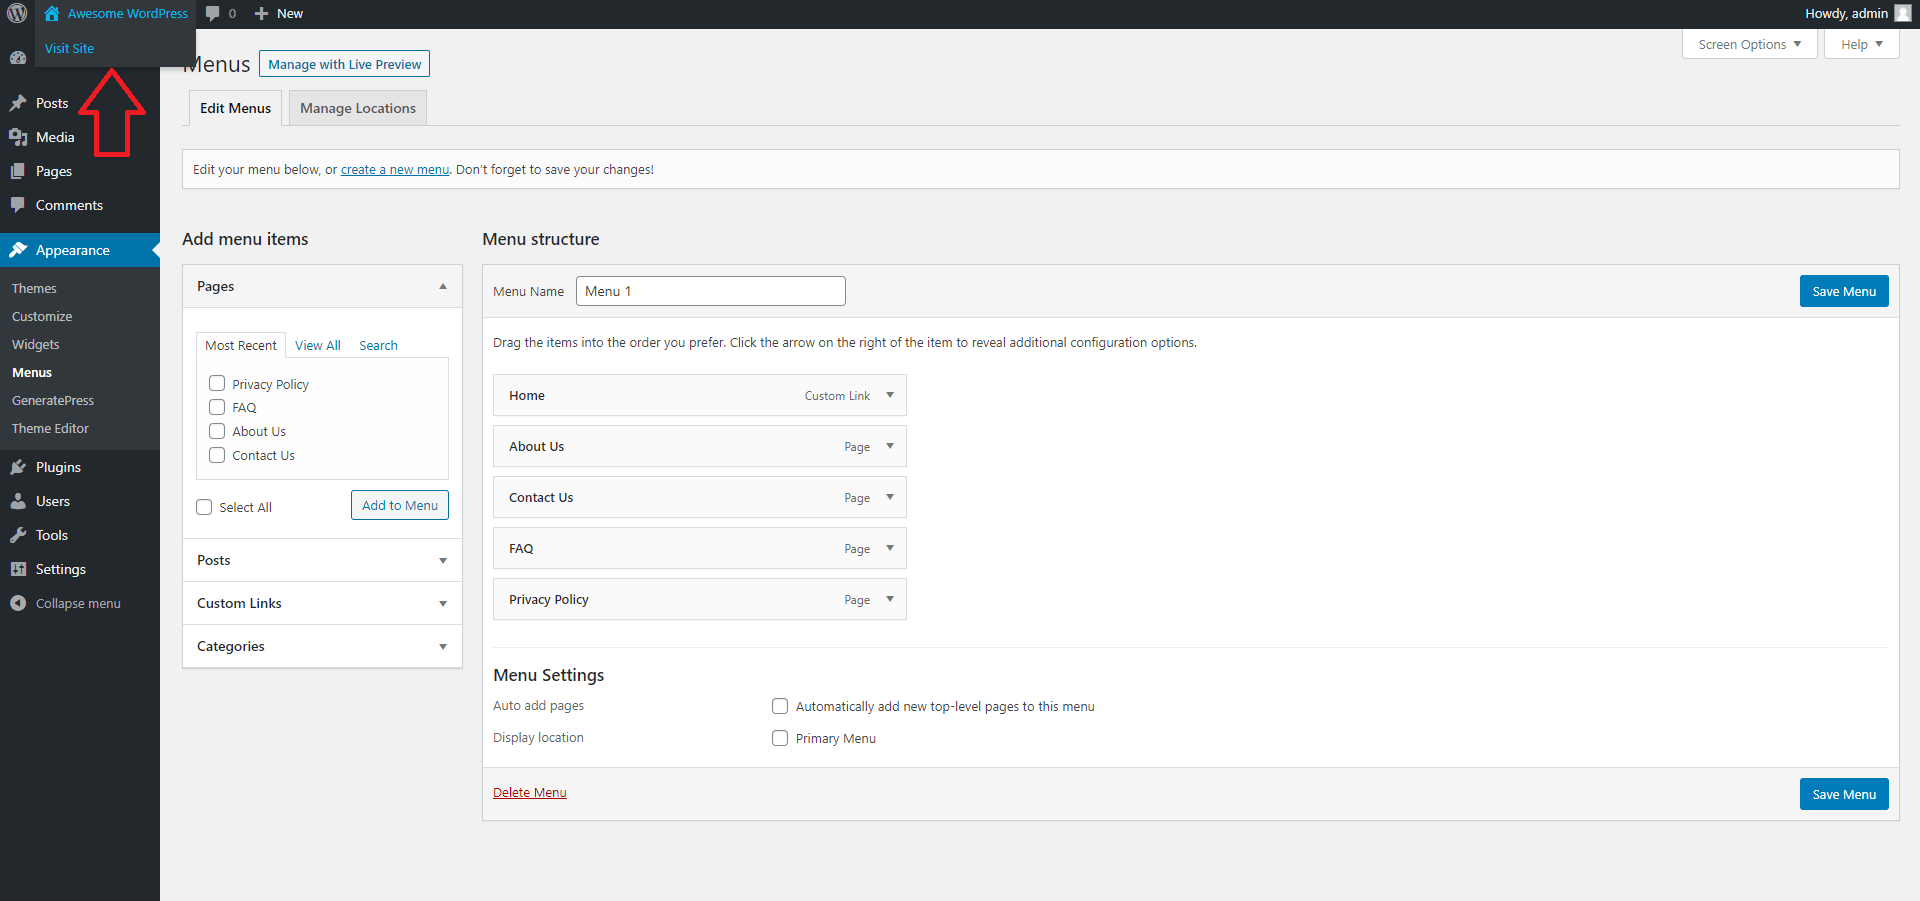 How to Preview Changes to WordPress Settings